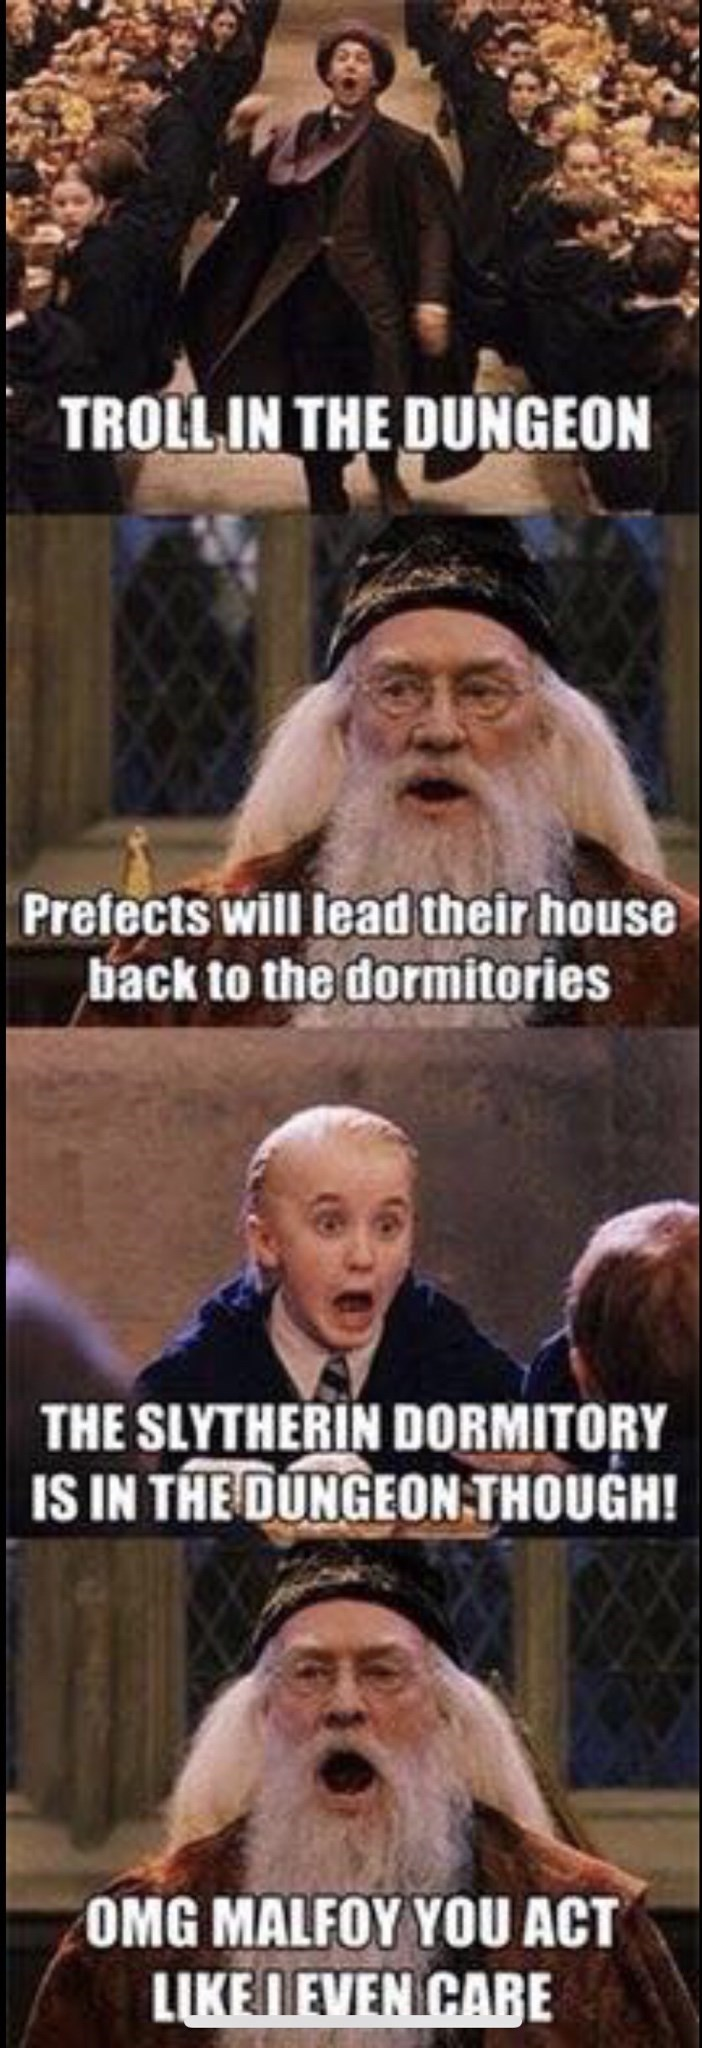 Photo caption - TROLLIN THE DUNGEON Prefects will lead their house back to the dormitories THE SLYTHERIN DORMITORY IS IN THEDUNGEONTHOUGH! OMG MALFOY YOU ACT LUKENEVEN CABE